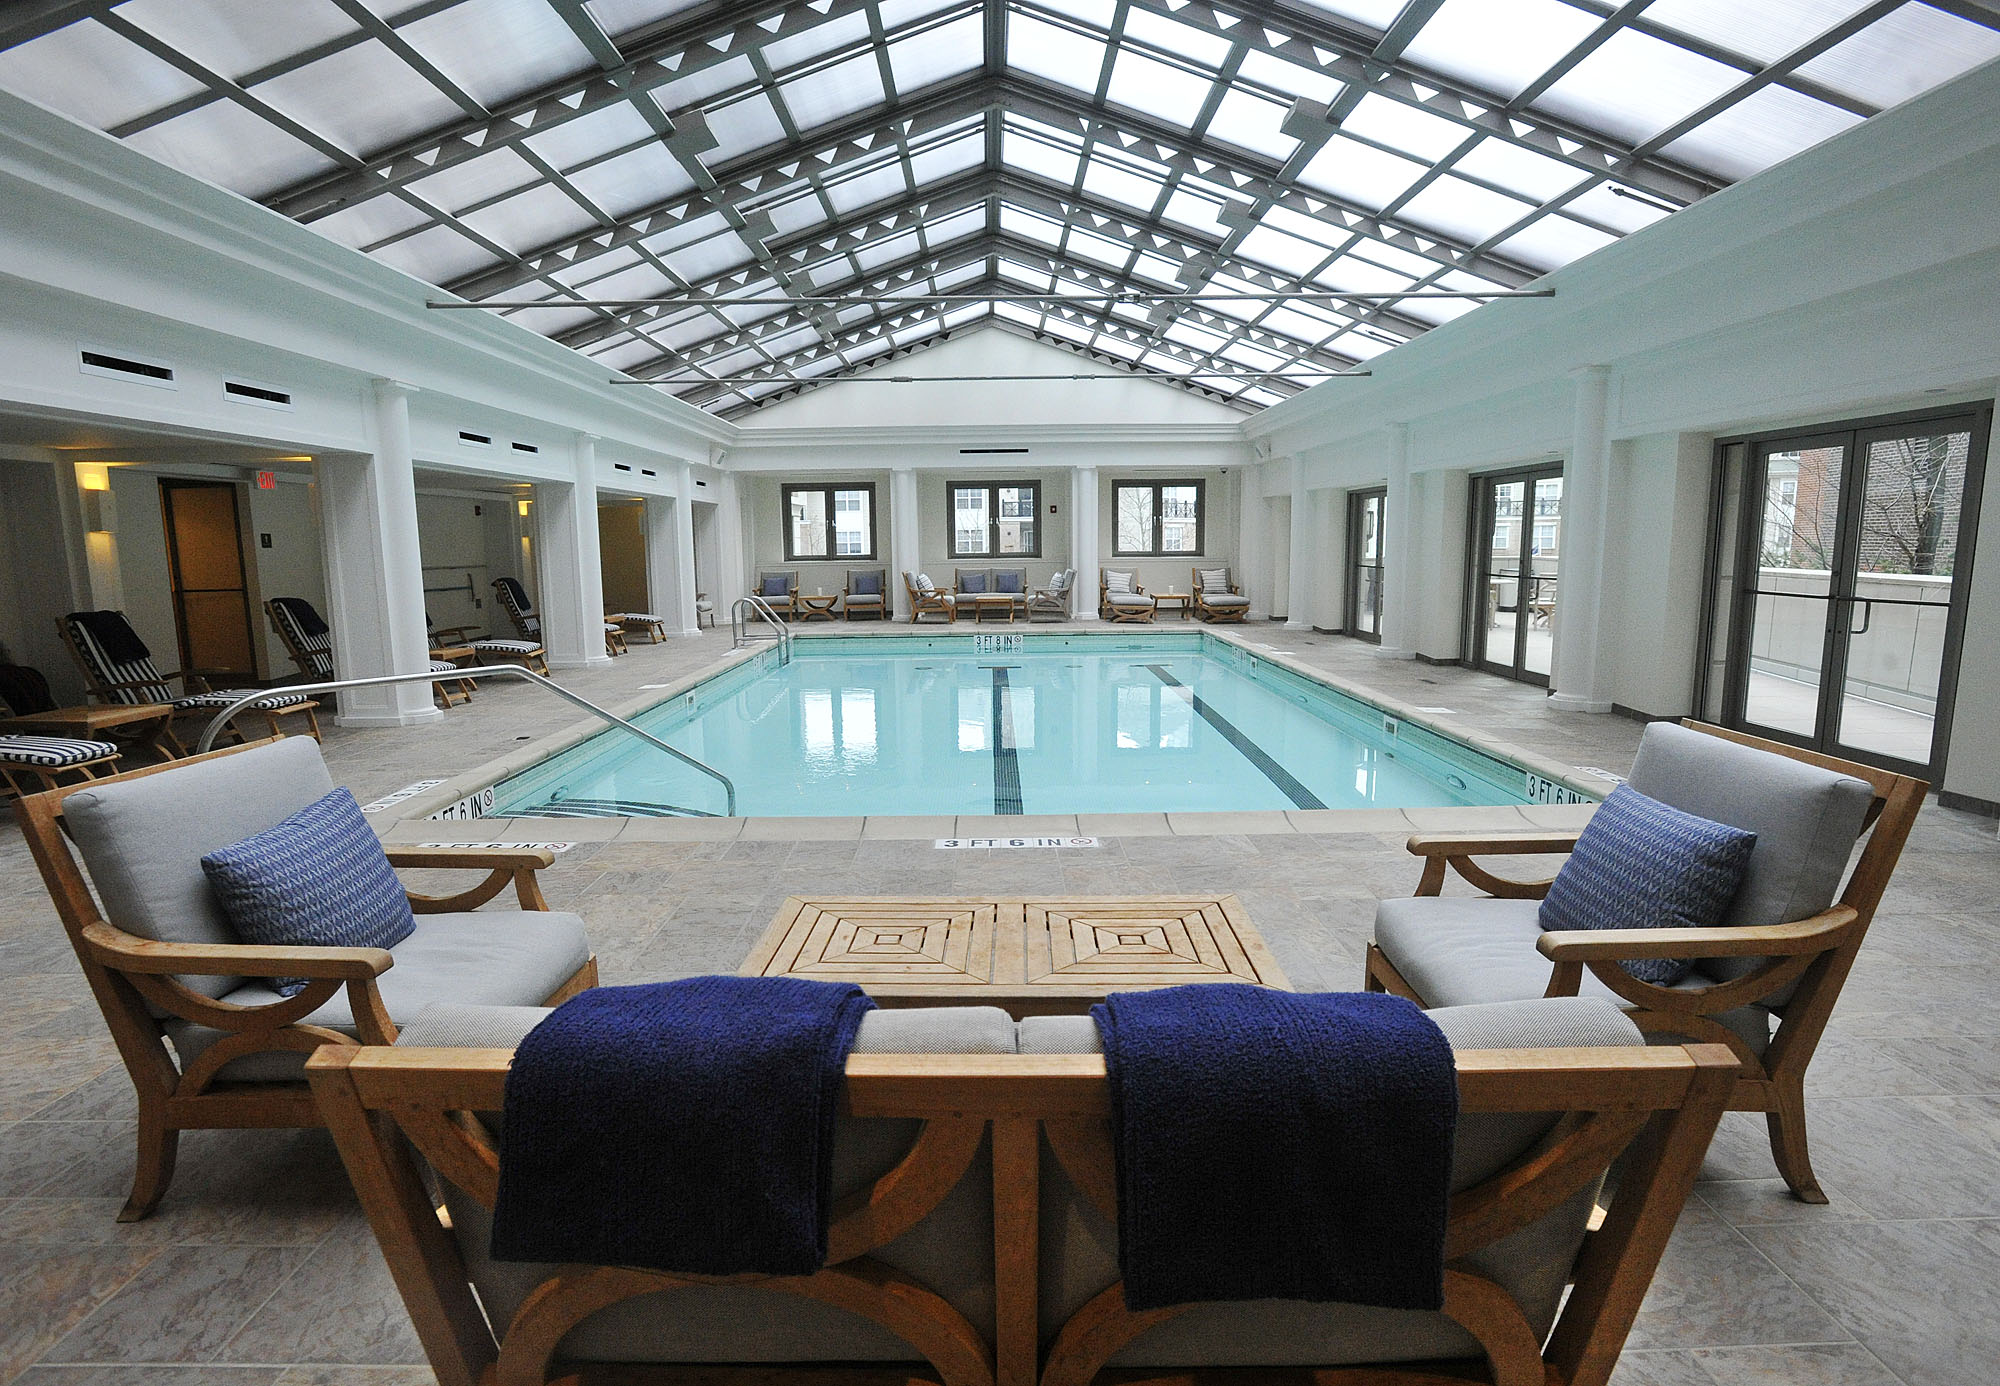 Buyer revealed of stamford luxury tower stamfordadvocate for Westhill swimming pool phone number